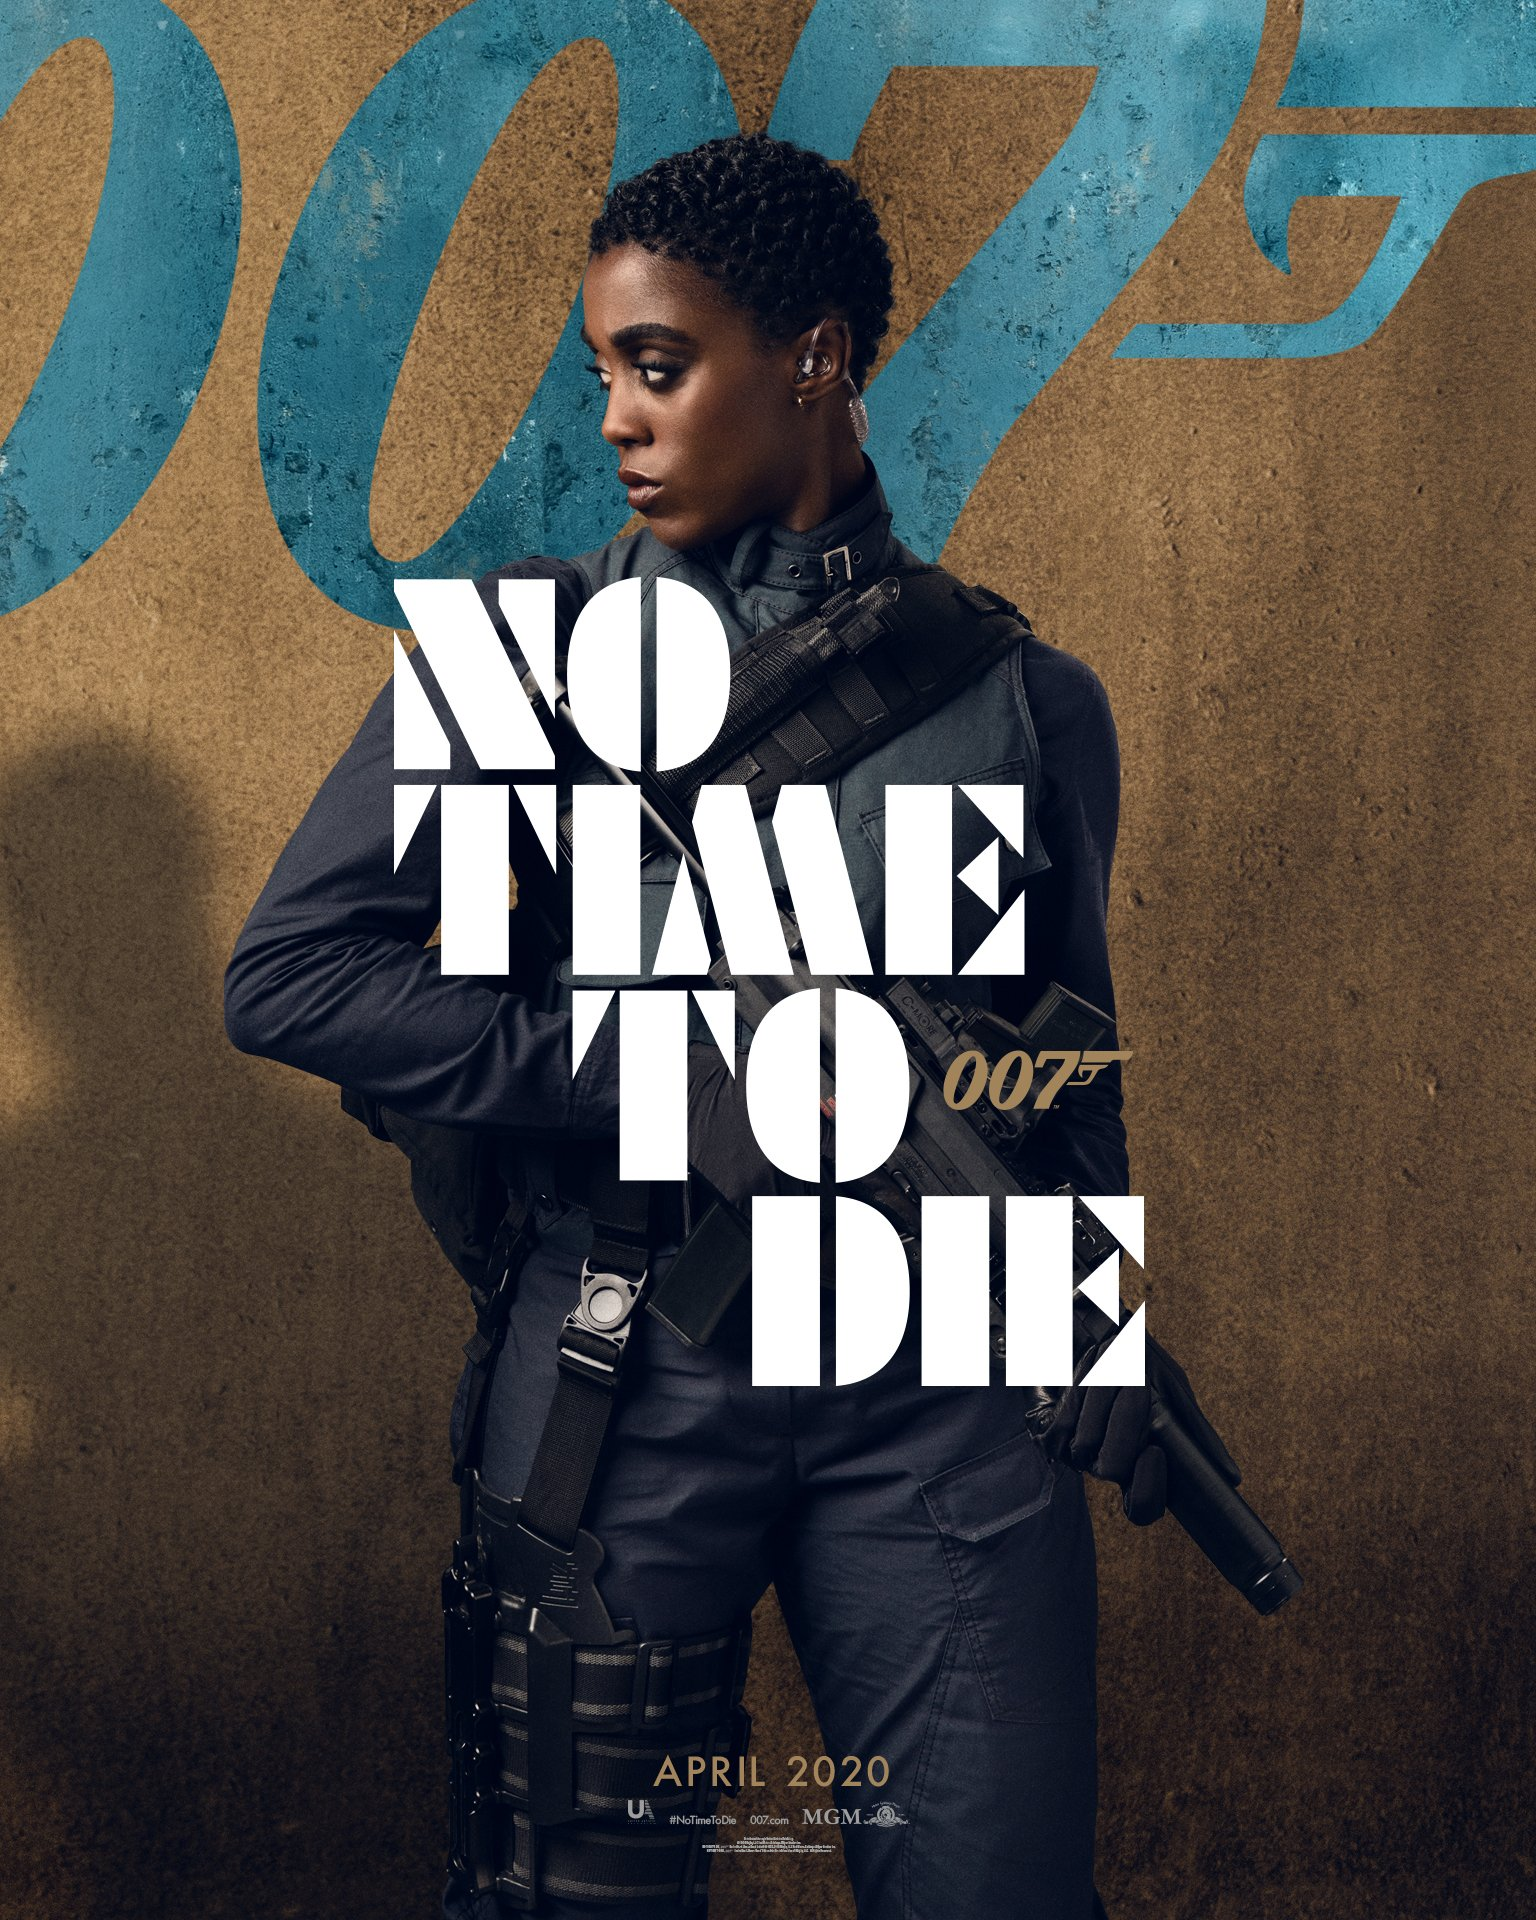 no time to die lashana lynch 007 bond